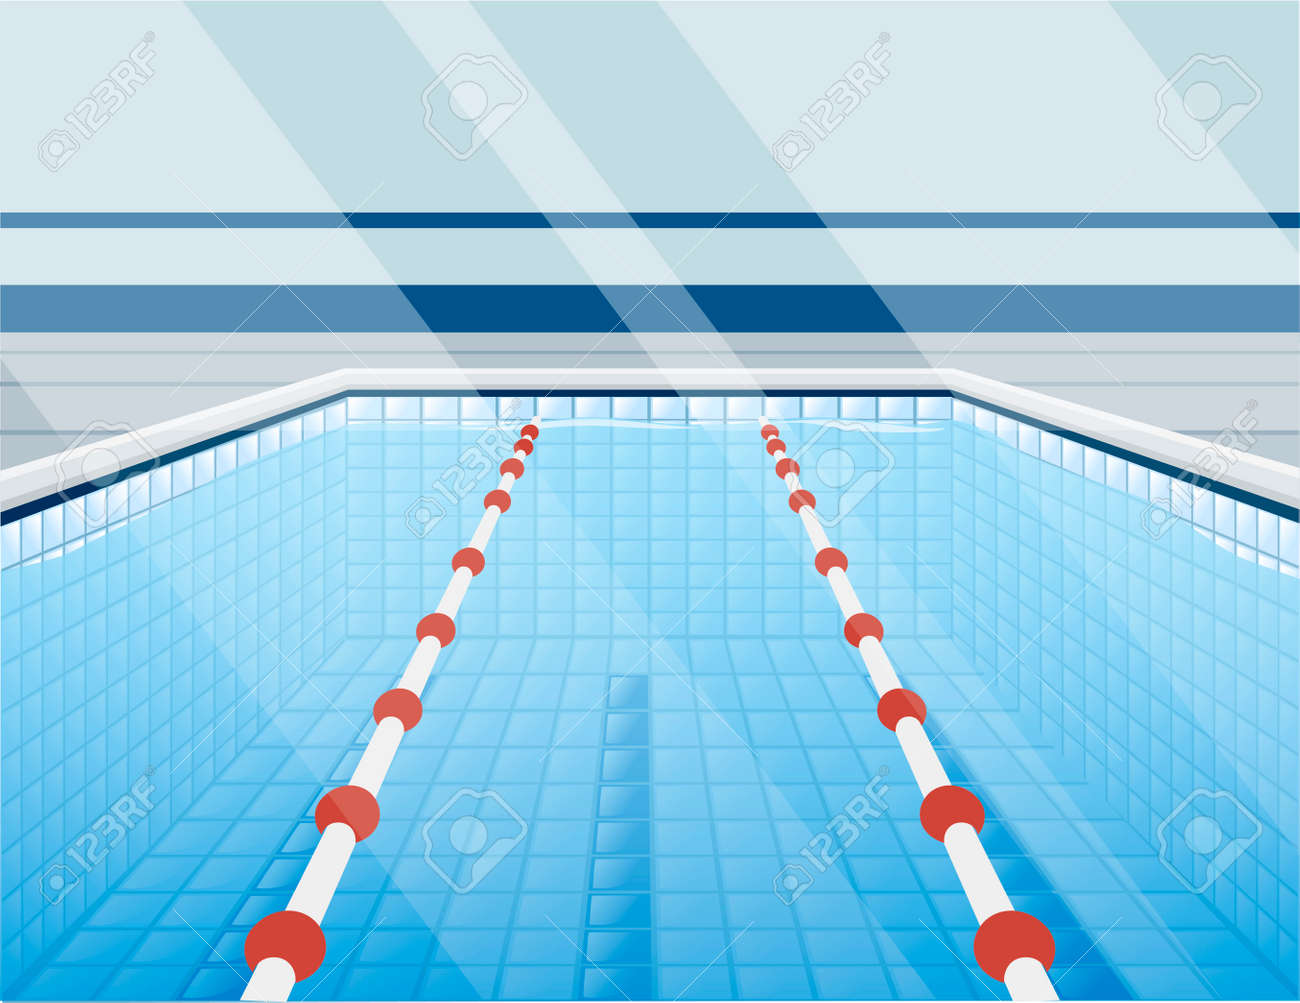 Professional swimming pool with paths for dip and water - 126045696